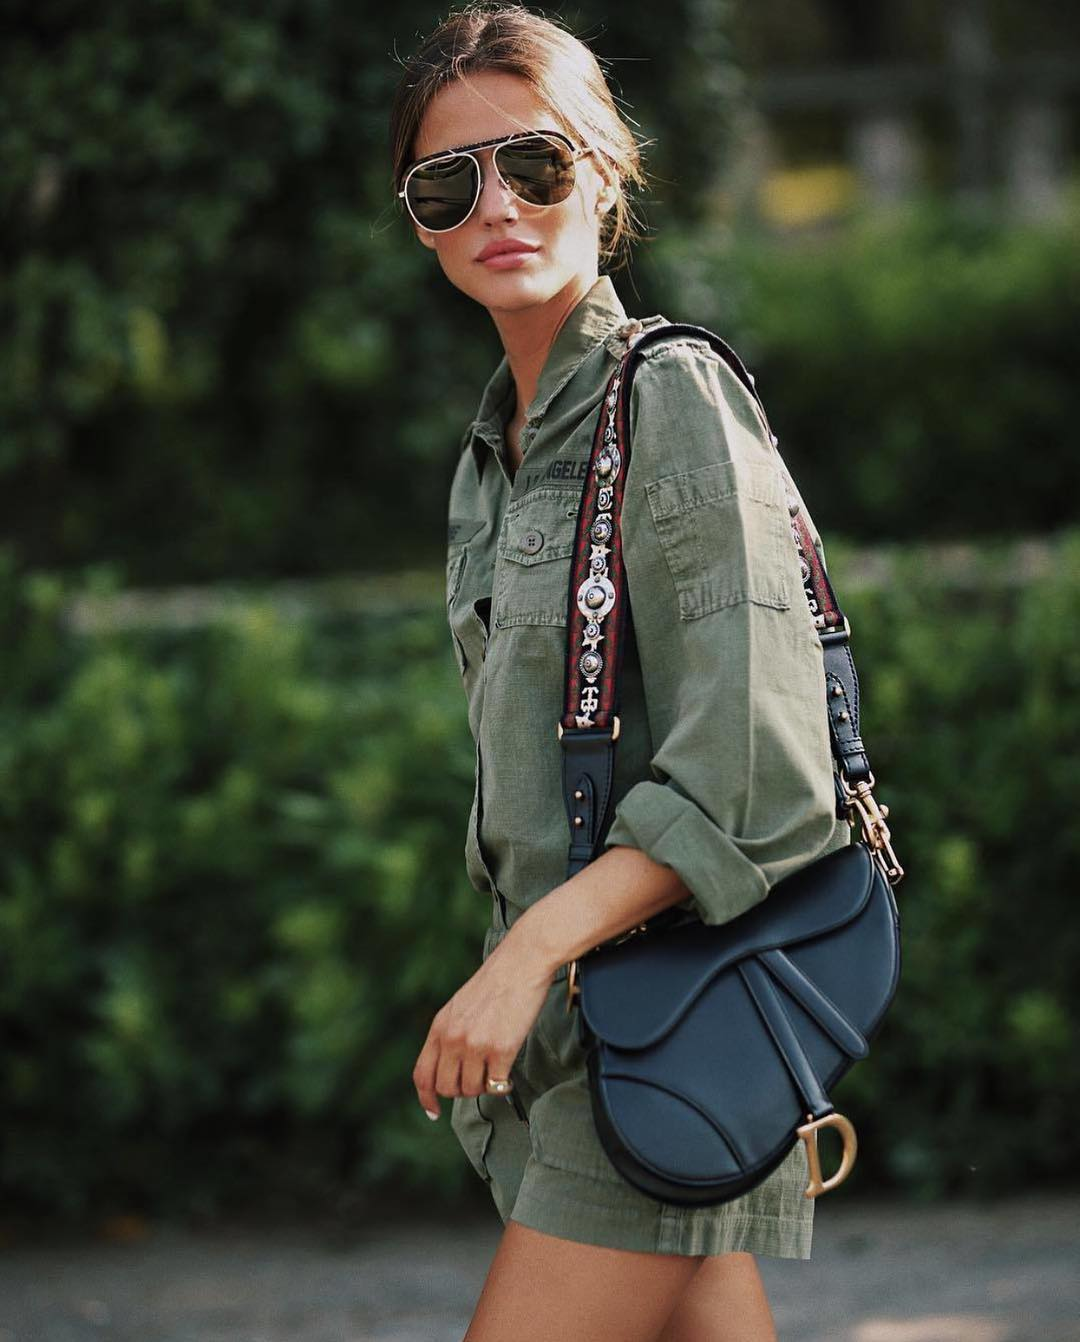 Military Style Green Romper With Aviator Sunglasses For Summer 2019